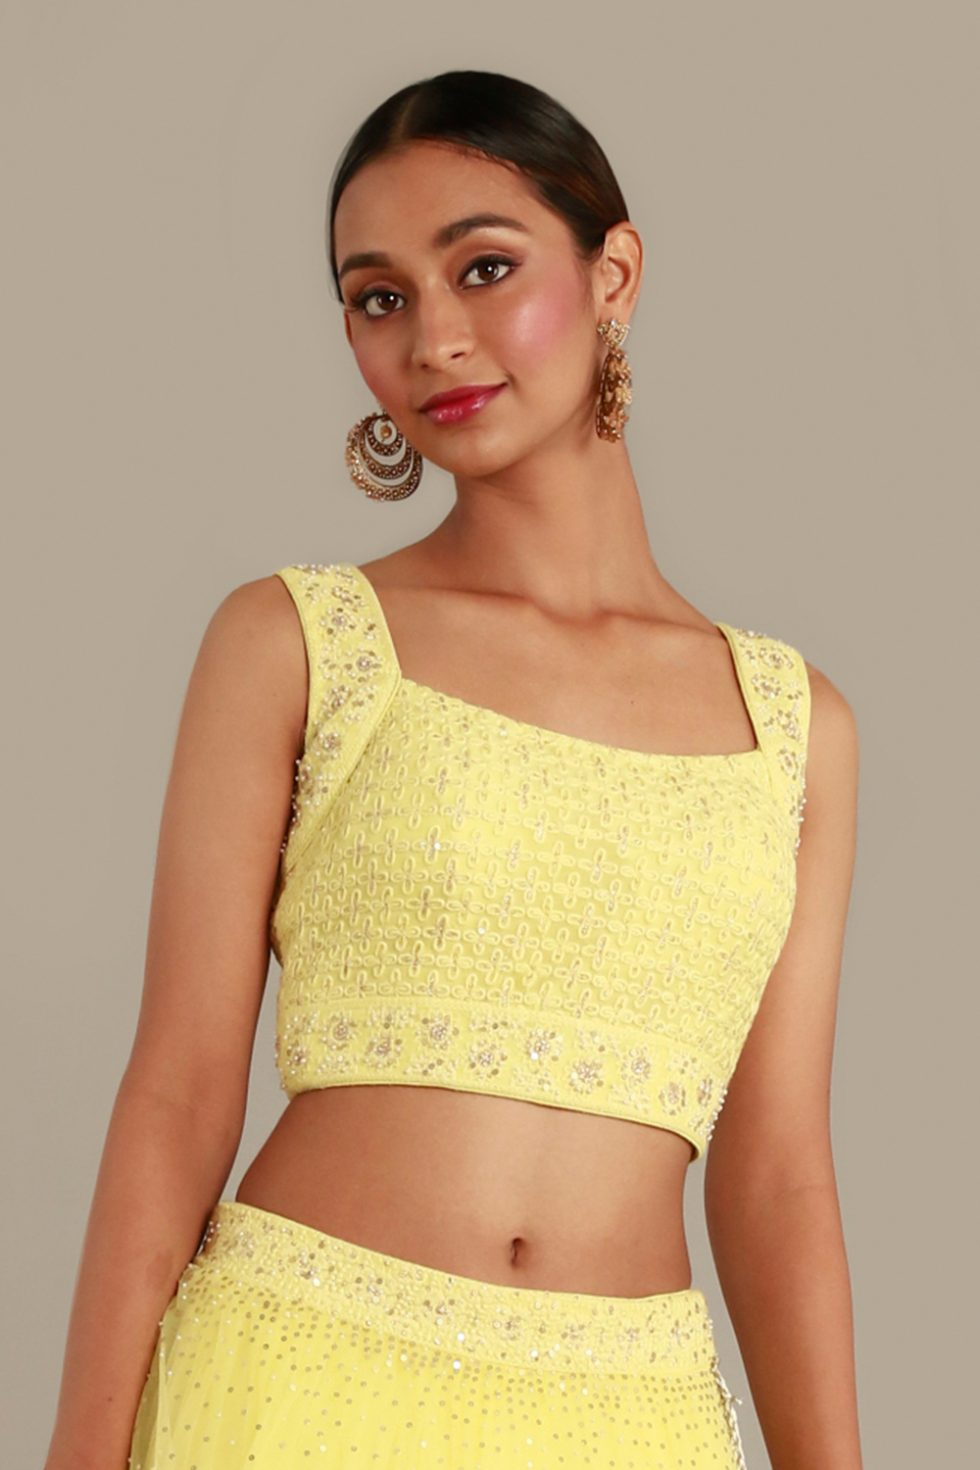 Sunshine yellow blouse with thread work and gold and silver embellishments